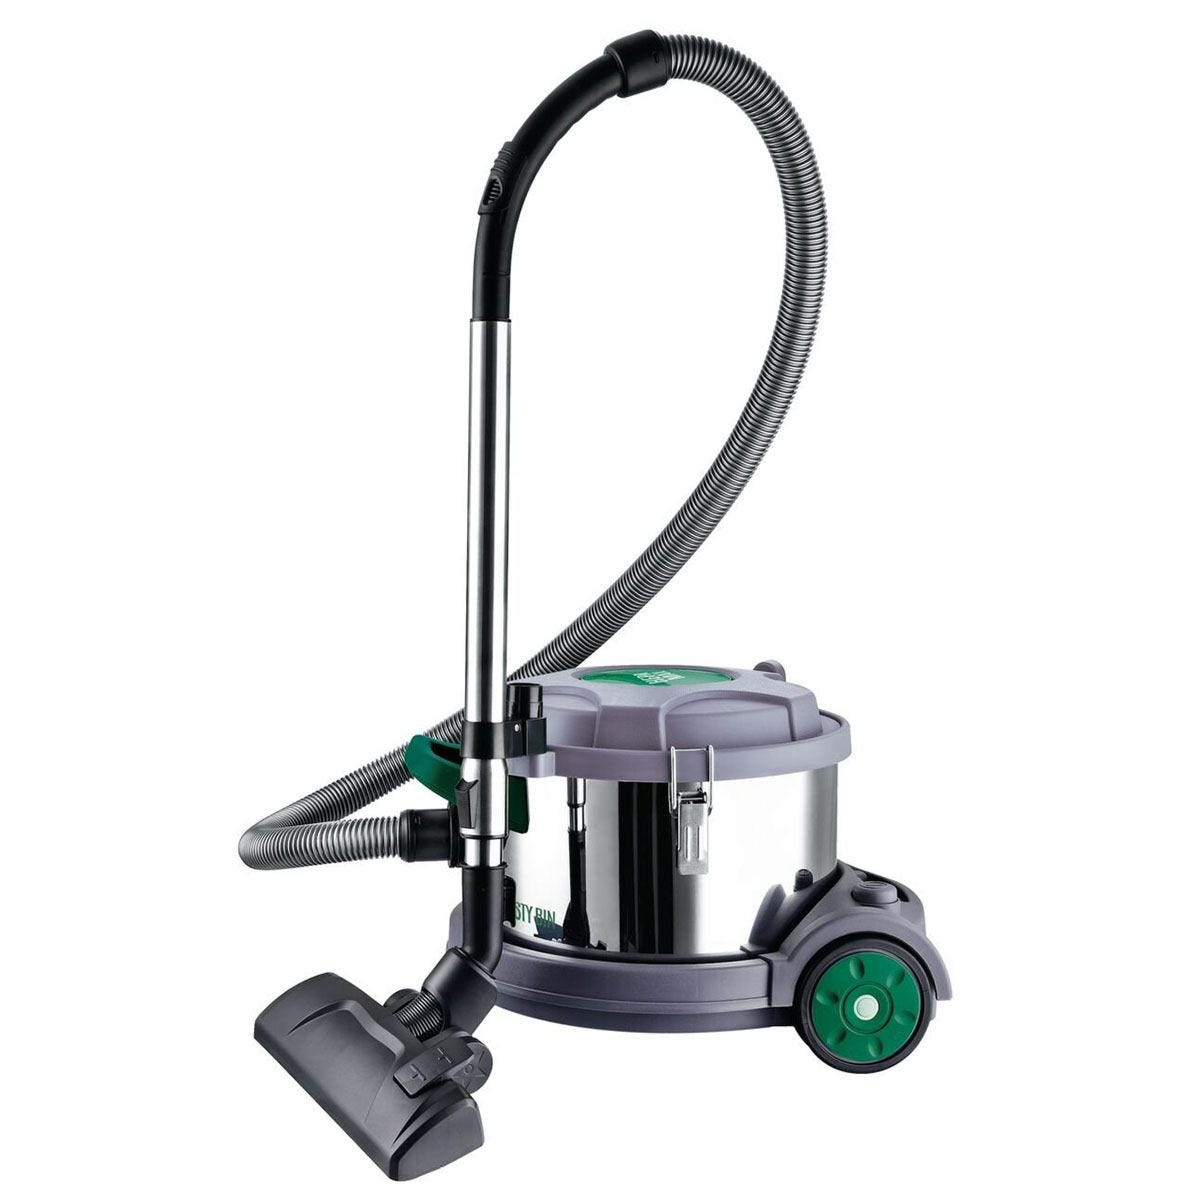 Dusty Bin 12L Max Canister Vacuum Cleaner - Stainless Steel